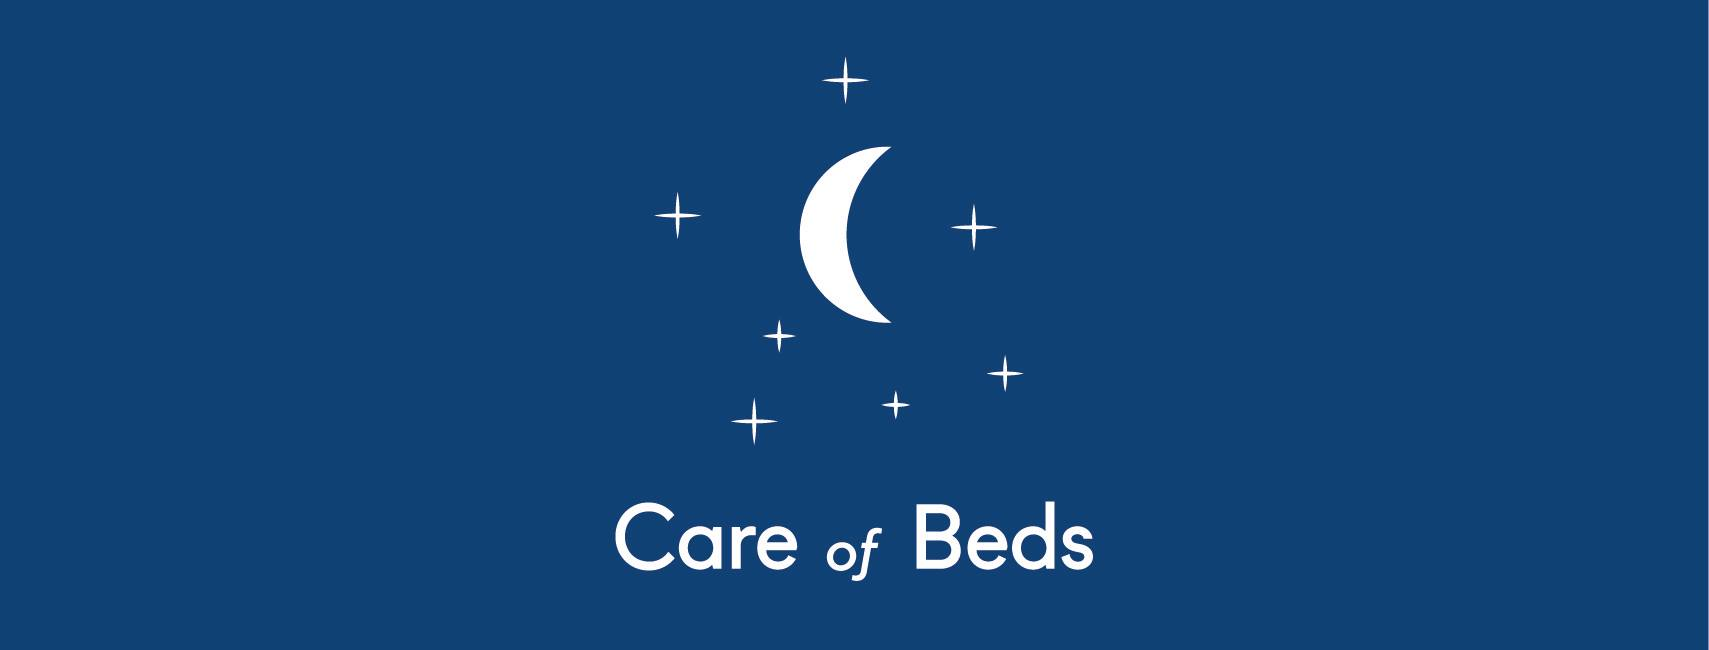 Care of Beds hero banner